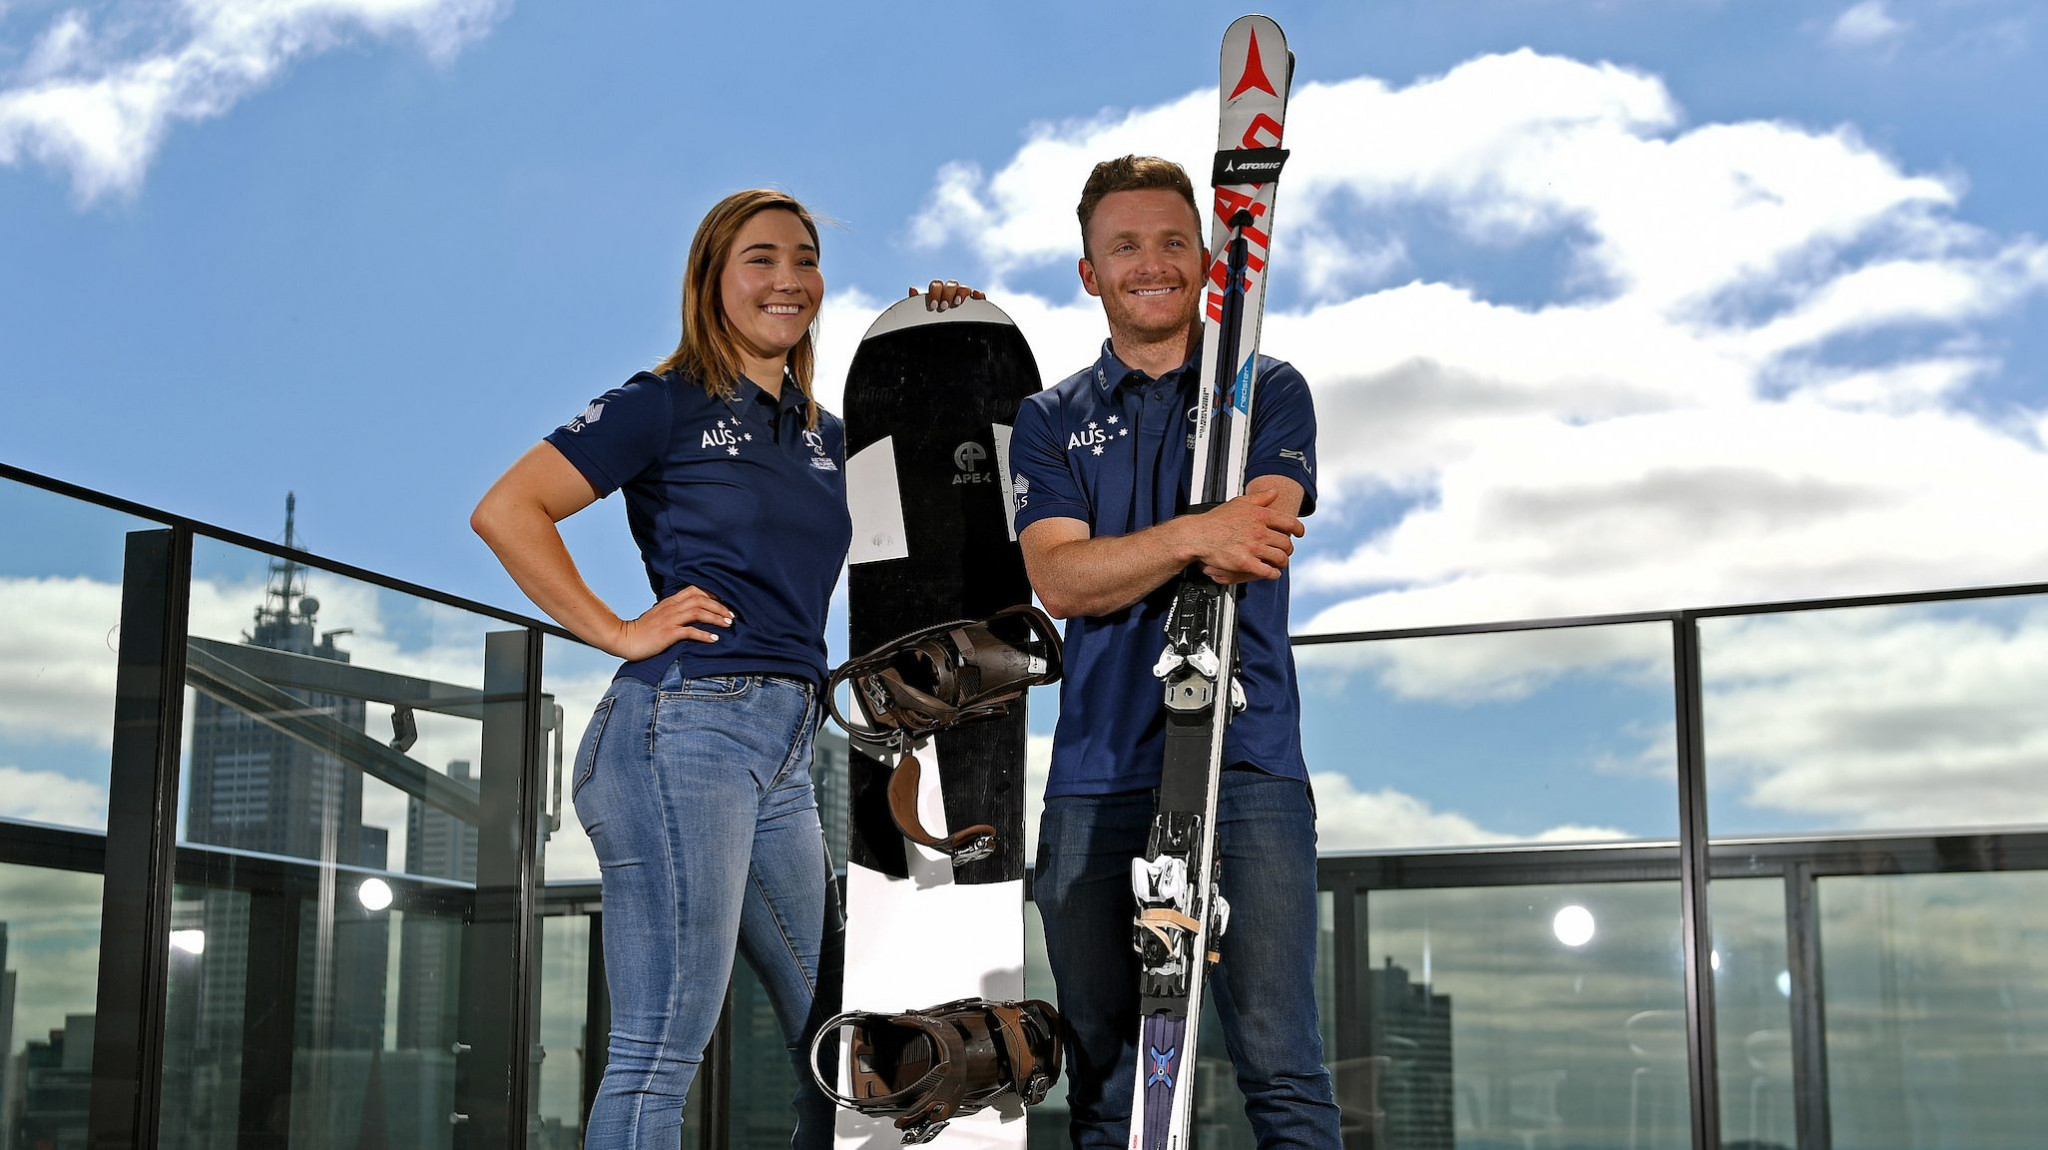 Joany Badenhorst and Mitchell Gourley have been named as co-captains of the team ©APC